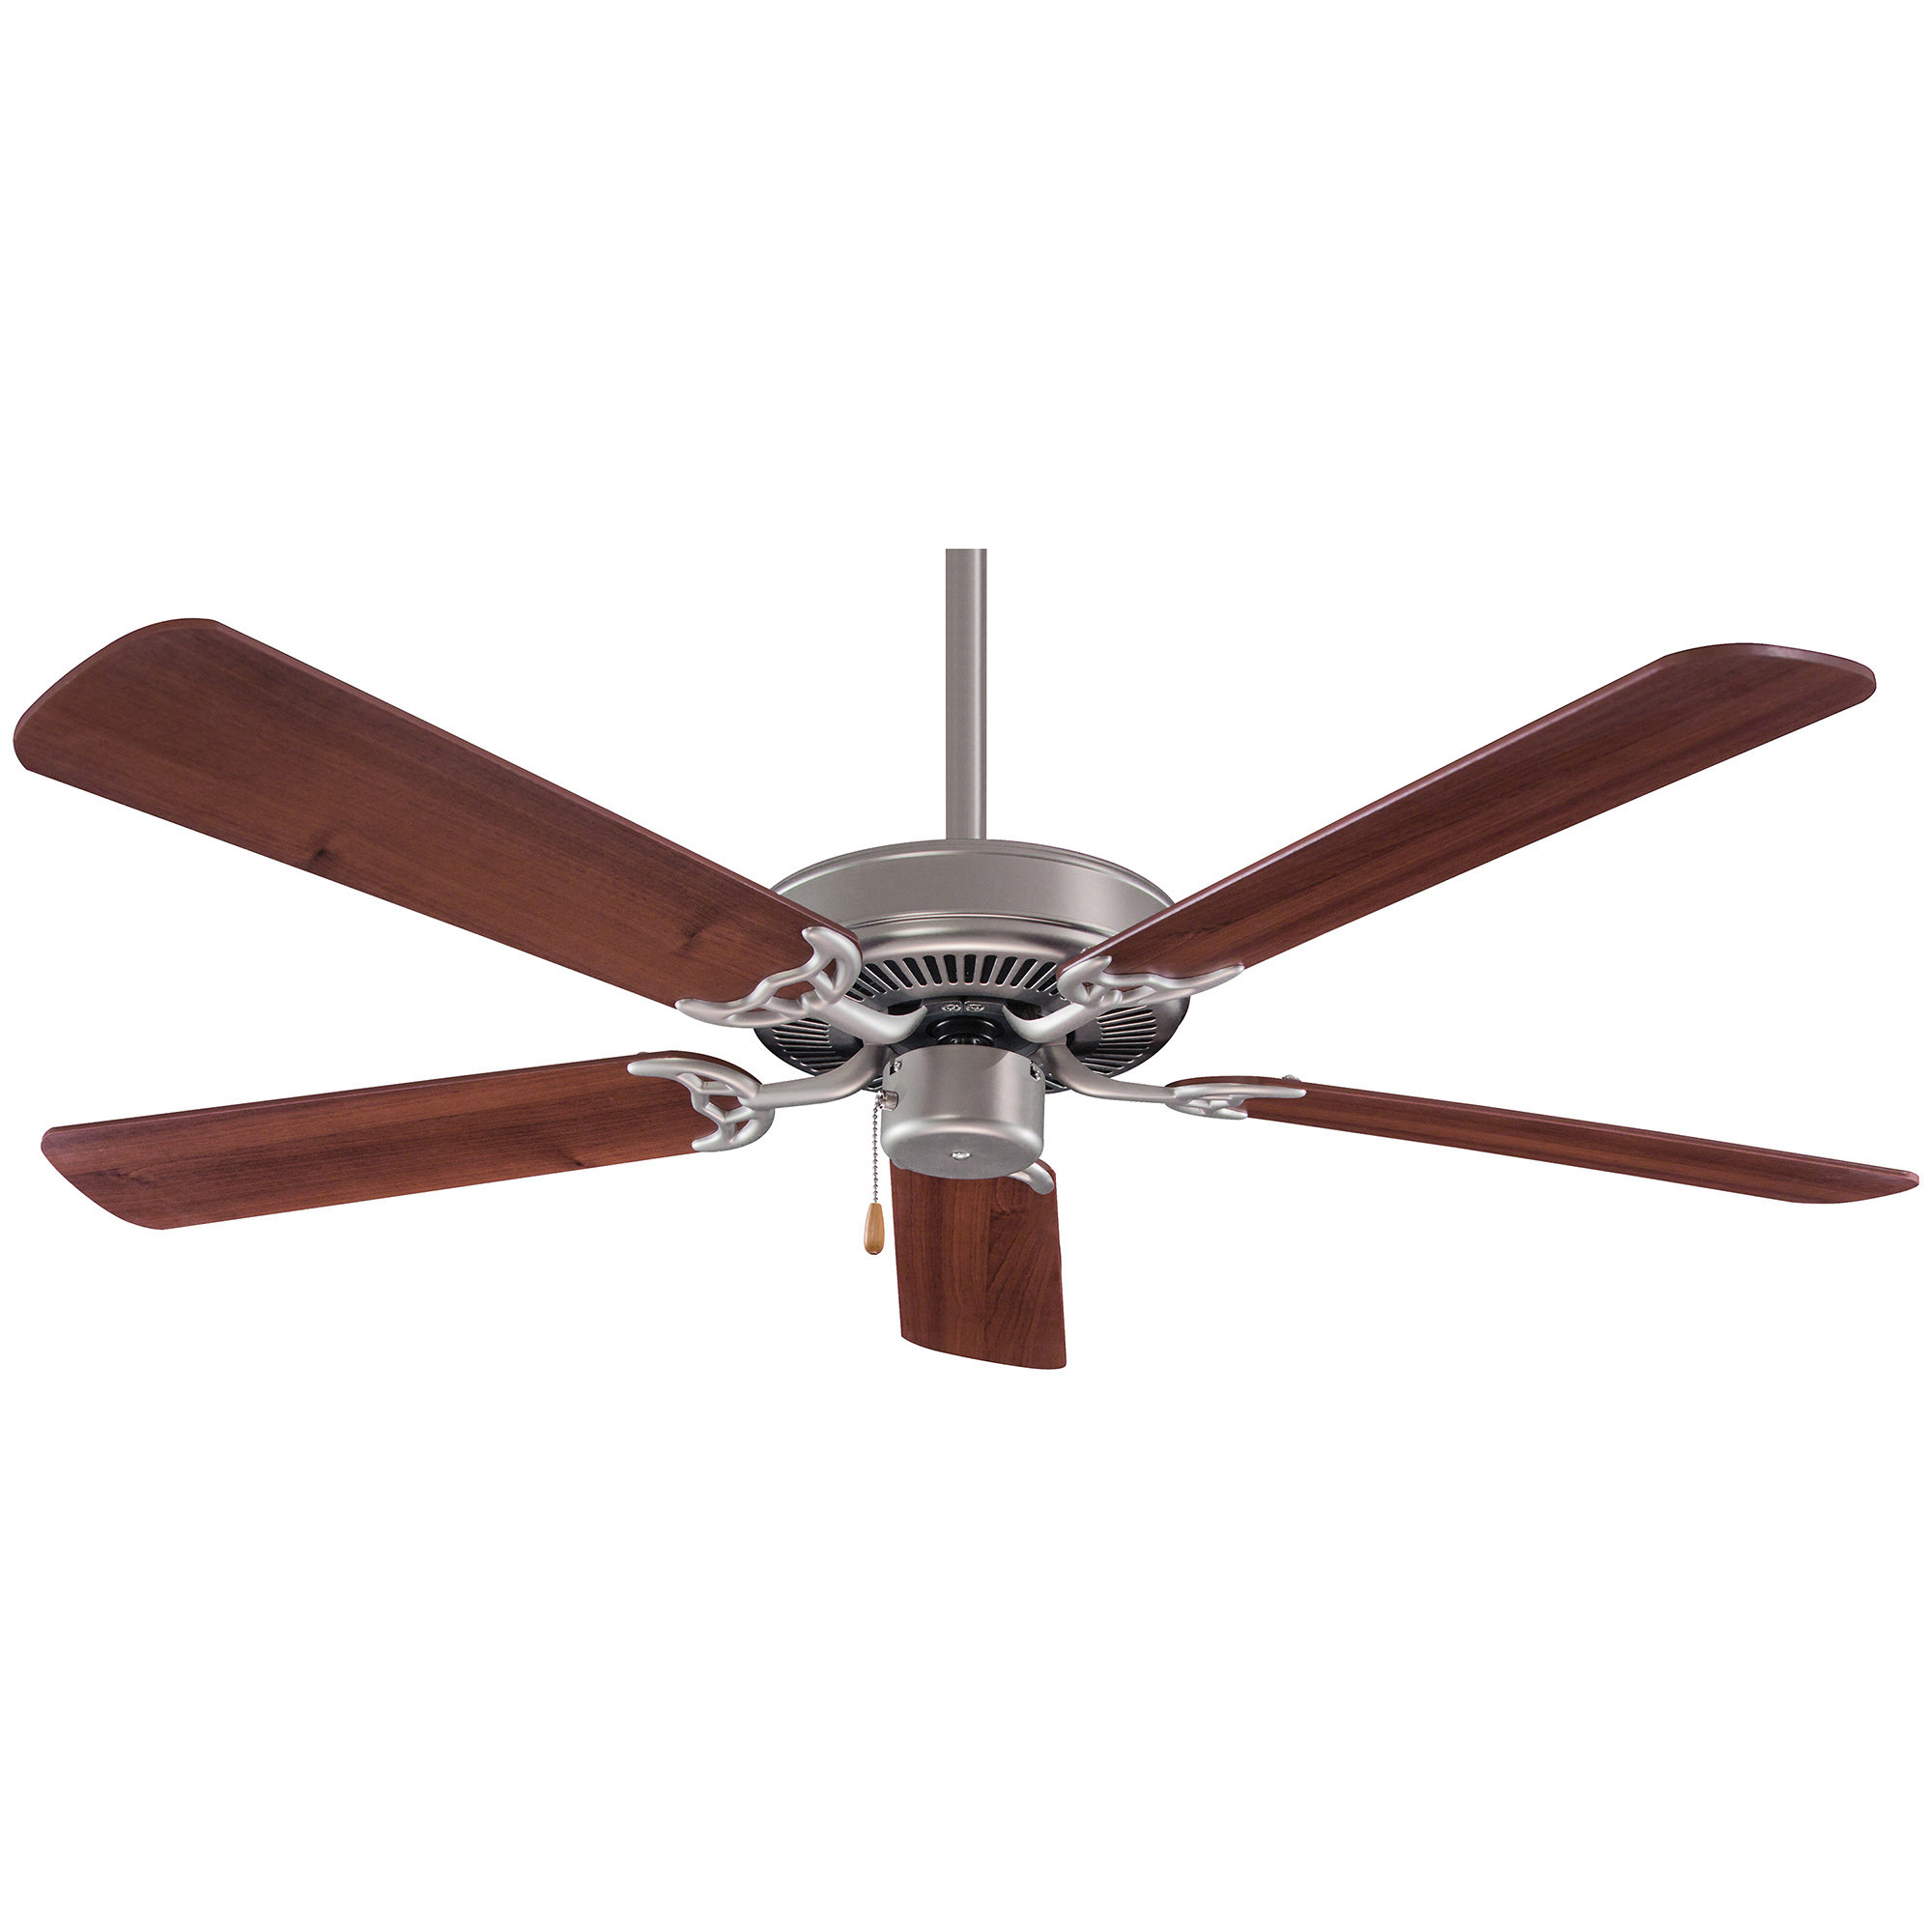 """Most Popular Minka Aire 52"""" Contractor 5 Blade Ceiling Fan For Contractor 5 Blade Ceiling Fans (View 16 of 20)"""